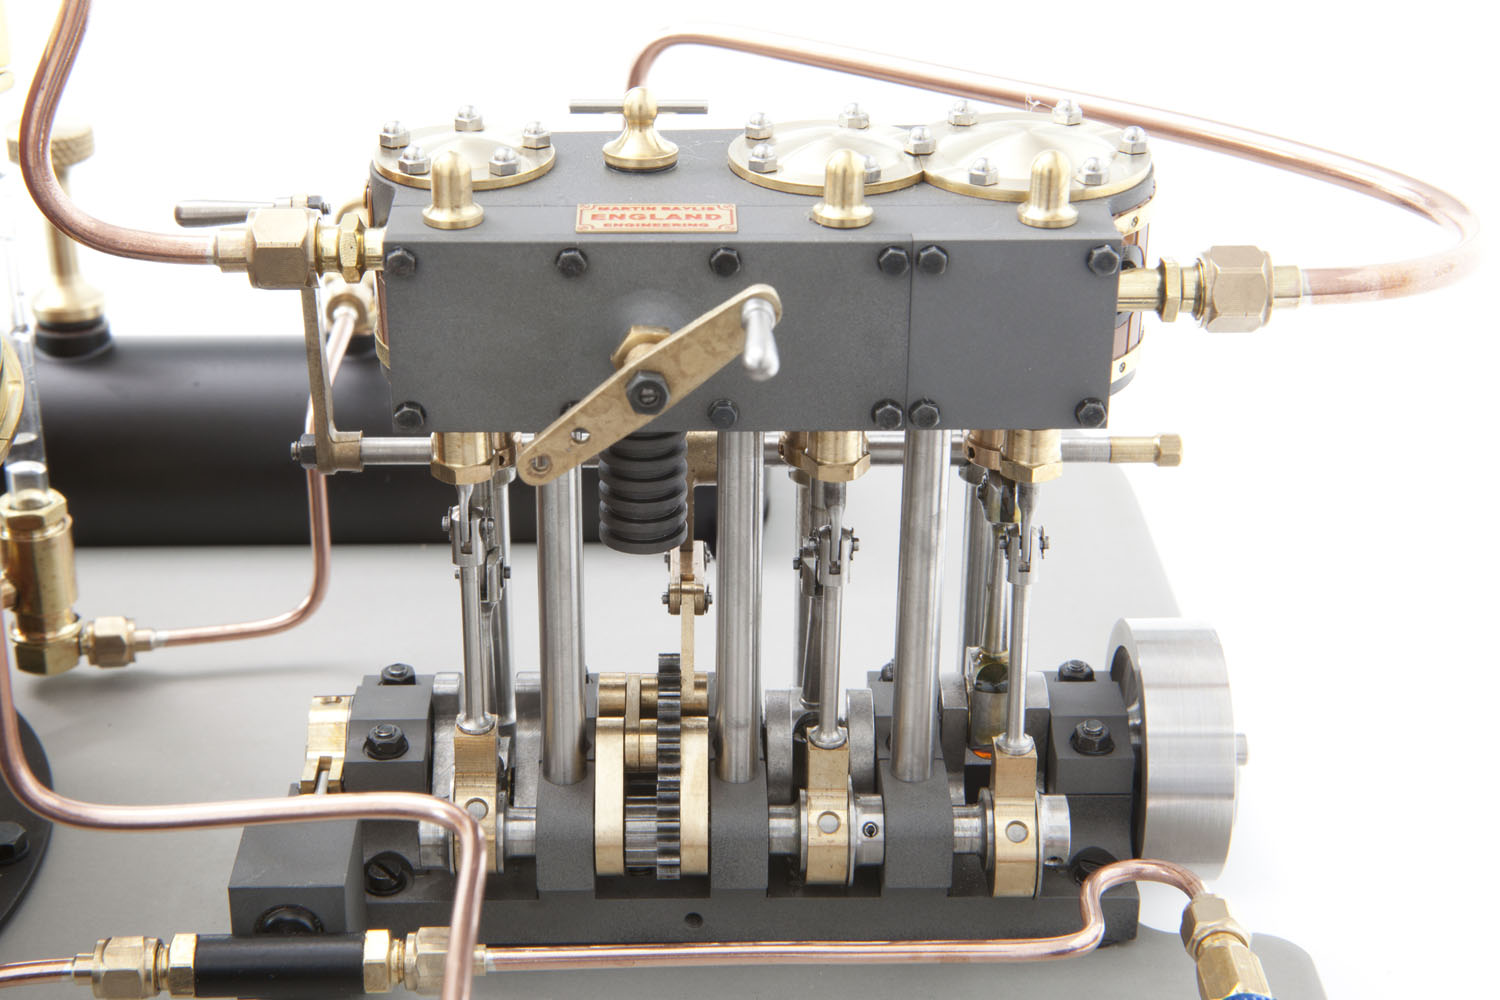 The three-cylinder model engine together with the engine driven feed pump and various sections of copper pipework.